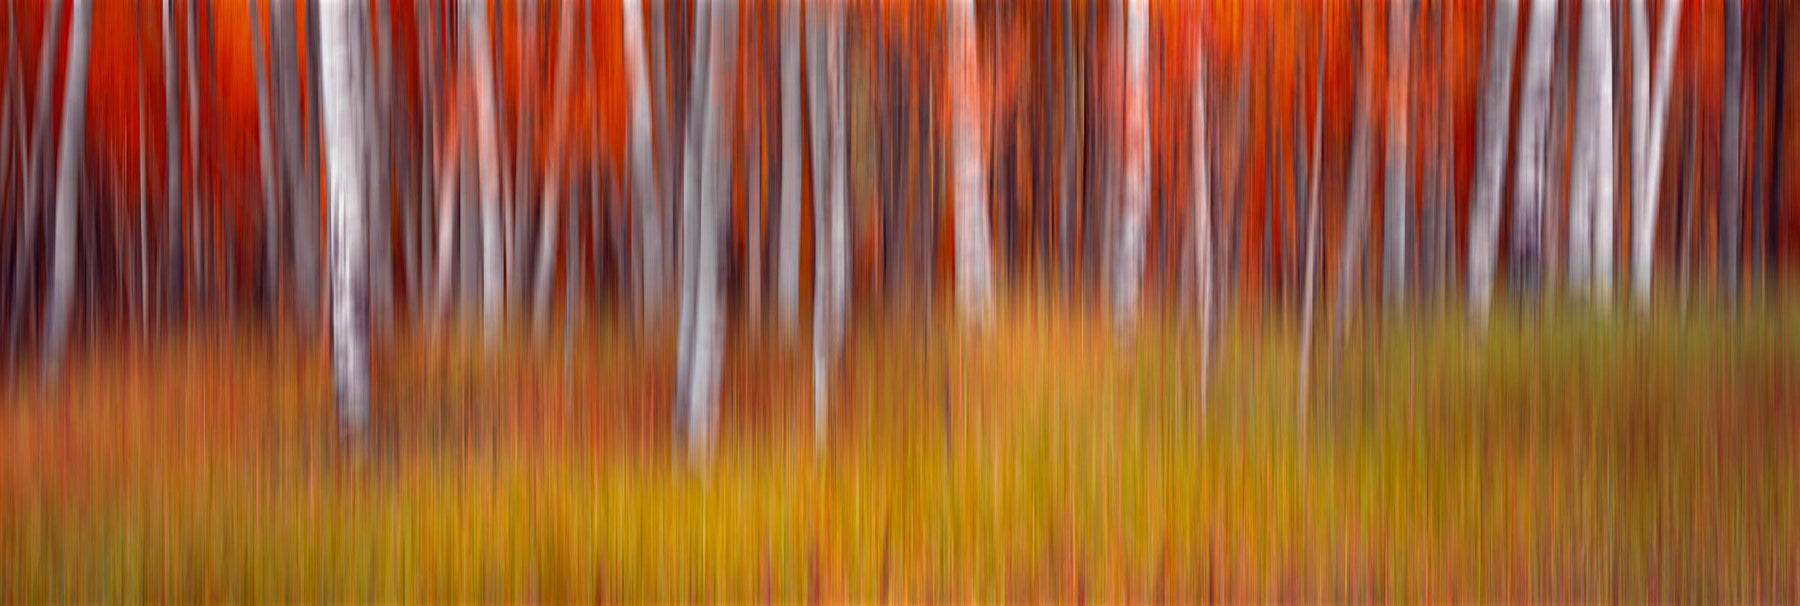 Blurred red and white forest with a green and yellow grass foreground in Aspen Colorado